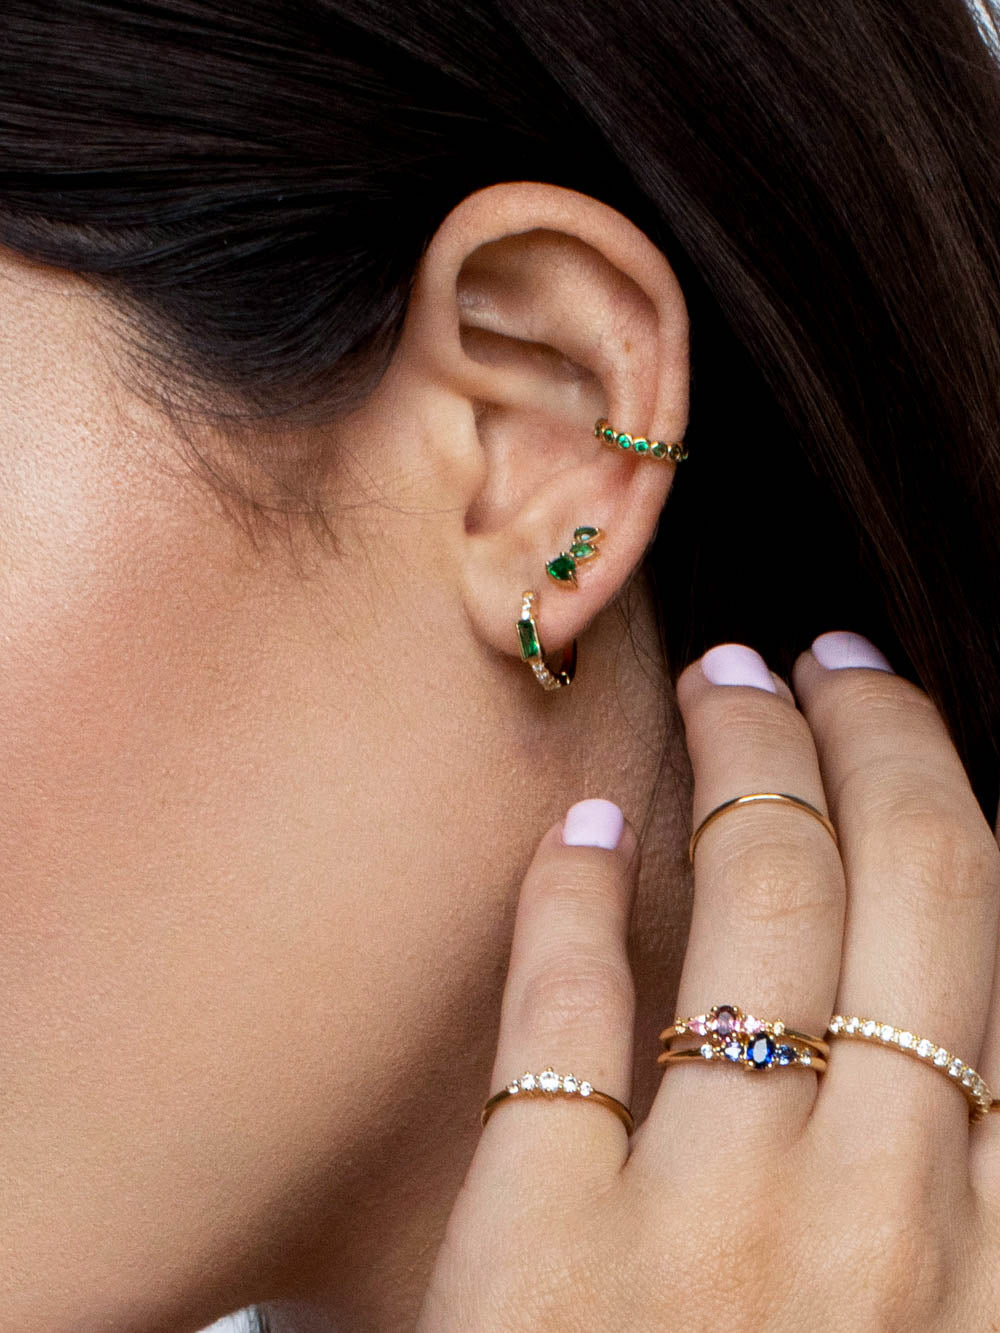 No Piercing Bezel Ear Cuff - Gold + Green